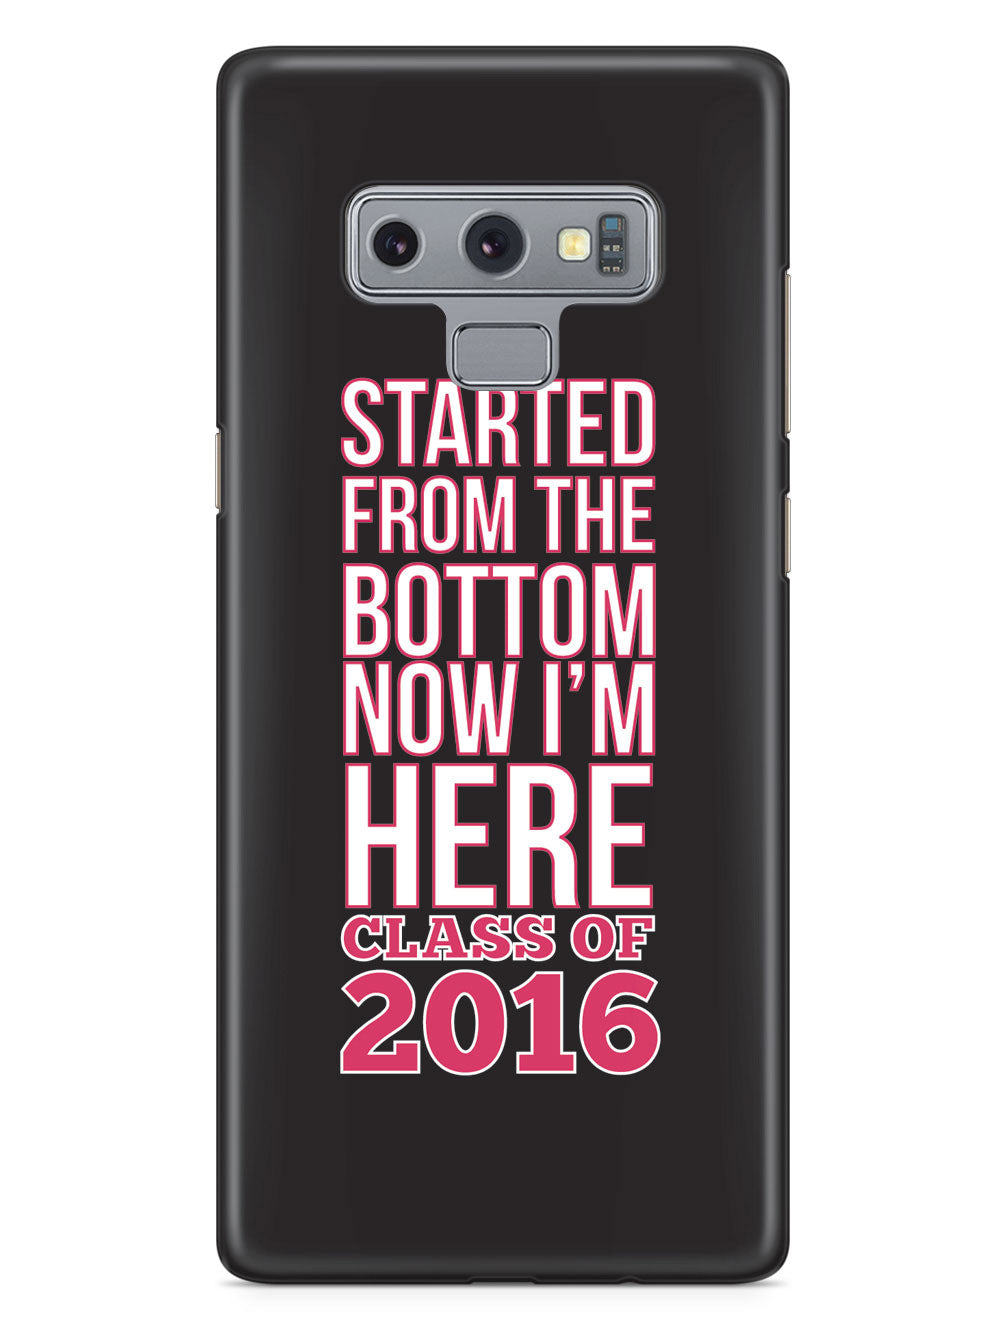 Now I'm Here - Class of 2016 Case